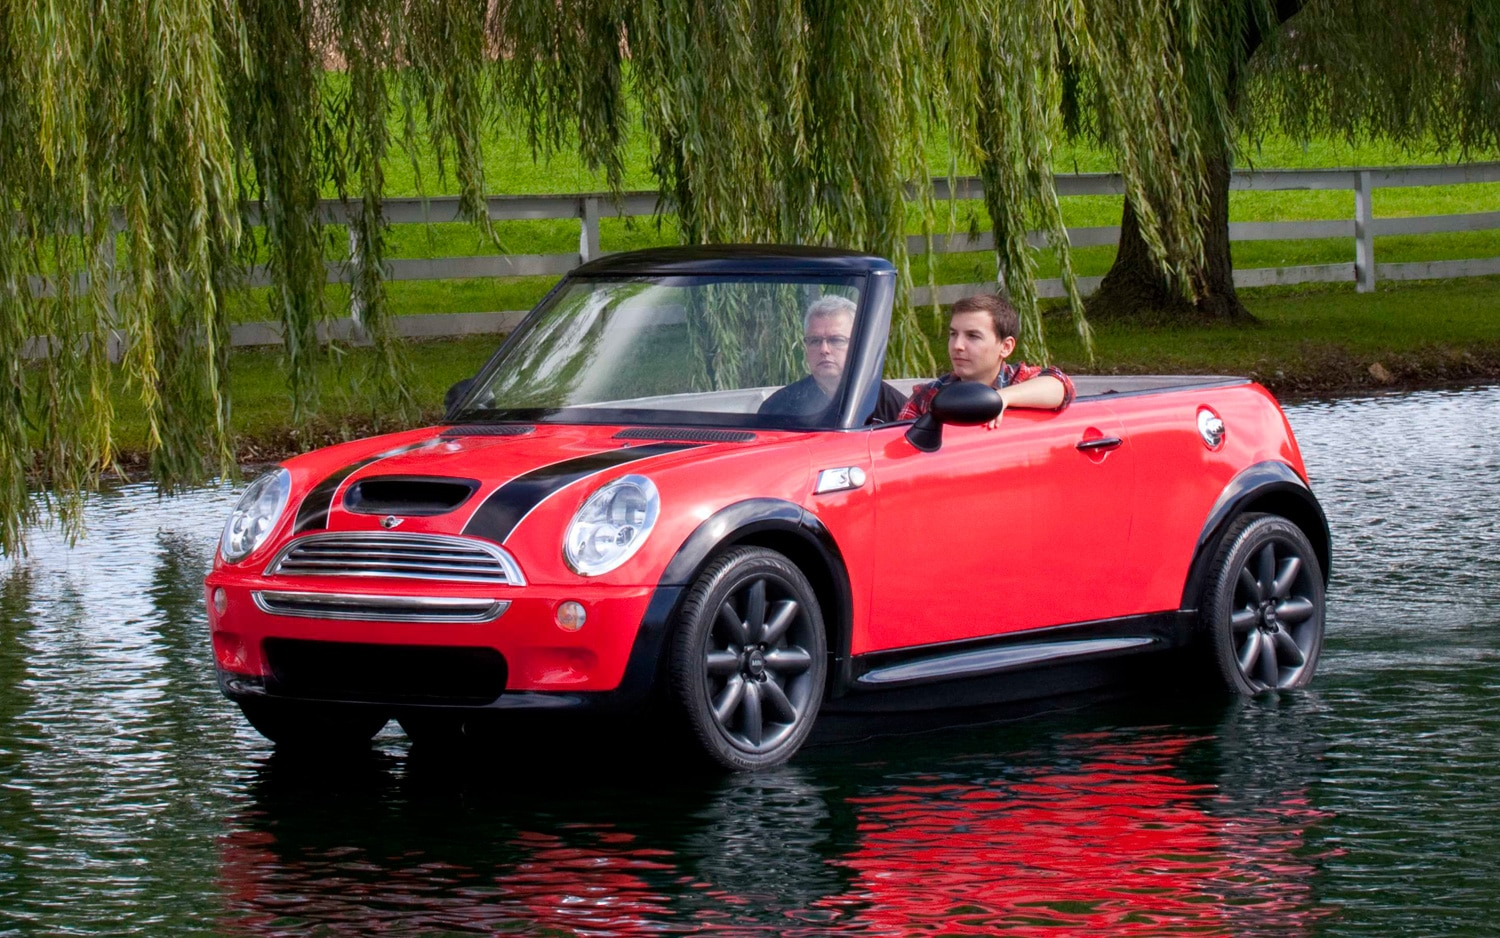 Mini Convertible Boat Front Three Quarter 11